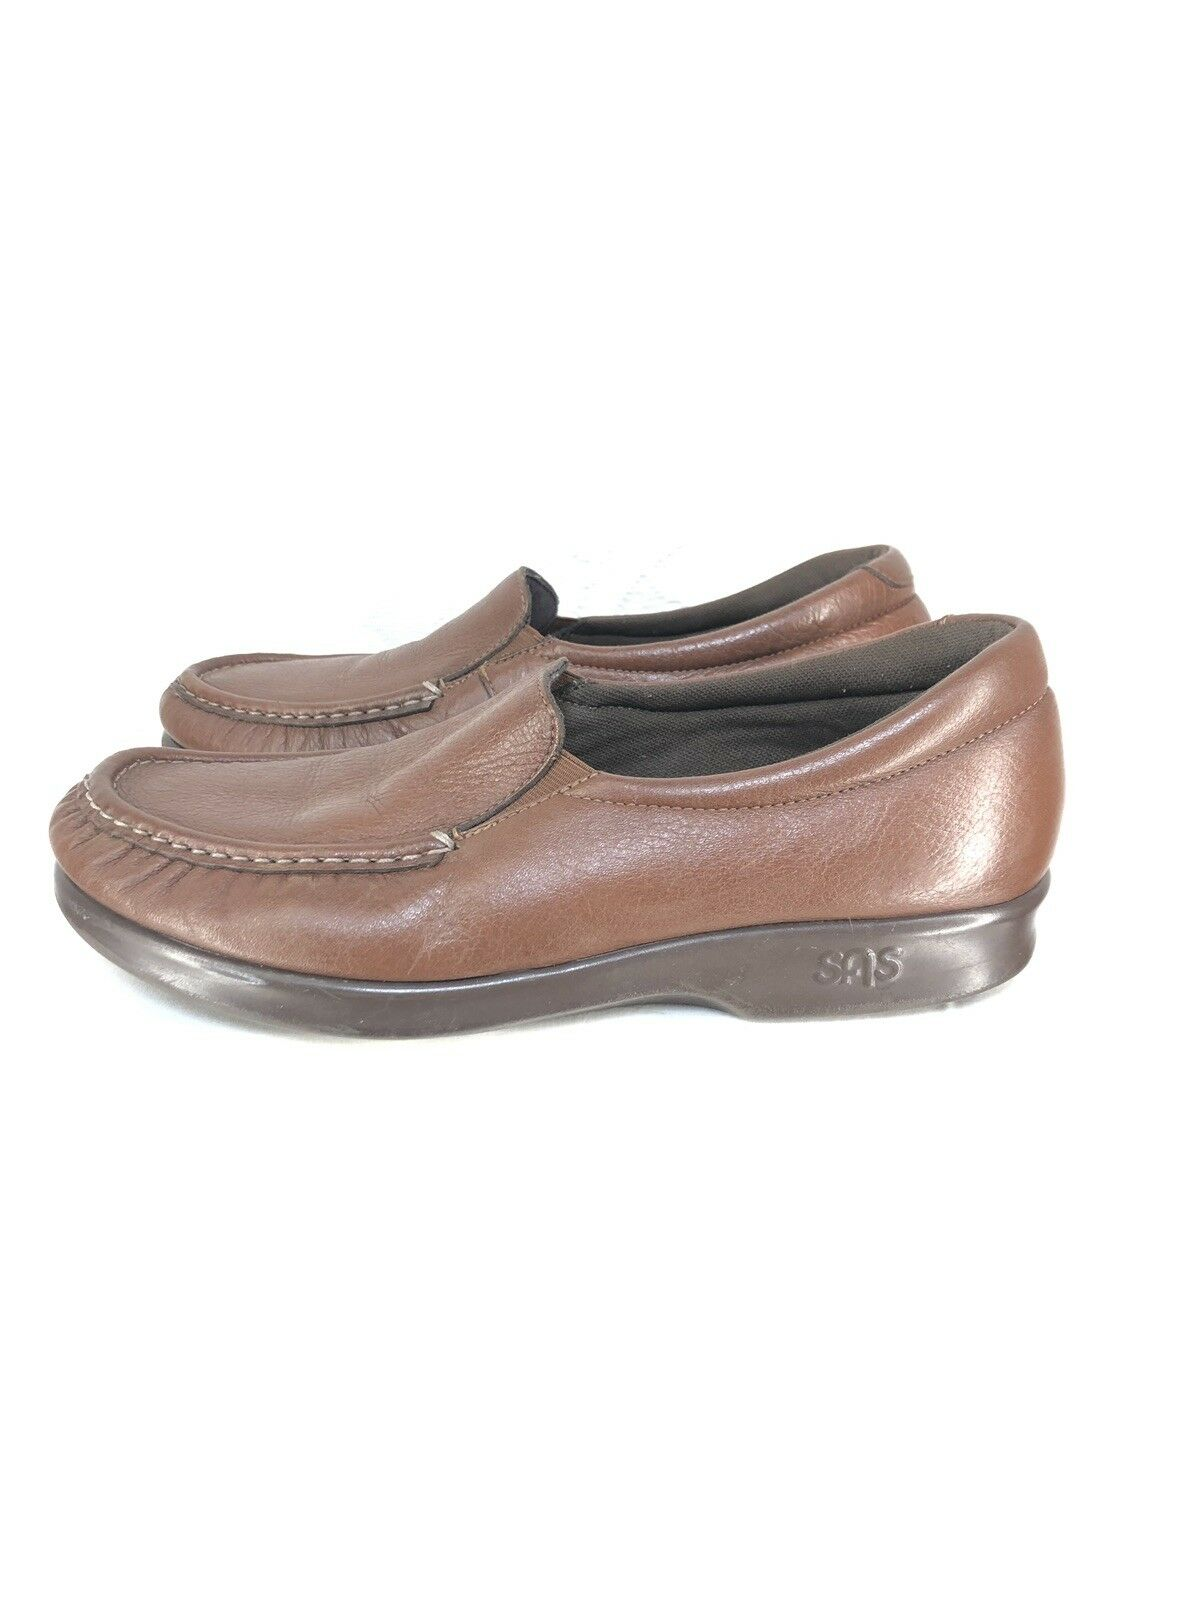 B11 SAS marron Leather Handsewn Slip-on chaussures Taille 8 No Insoles